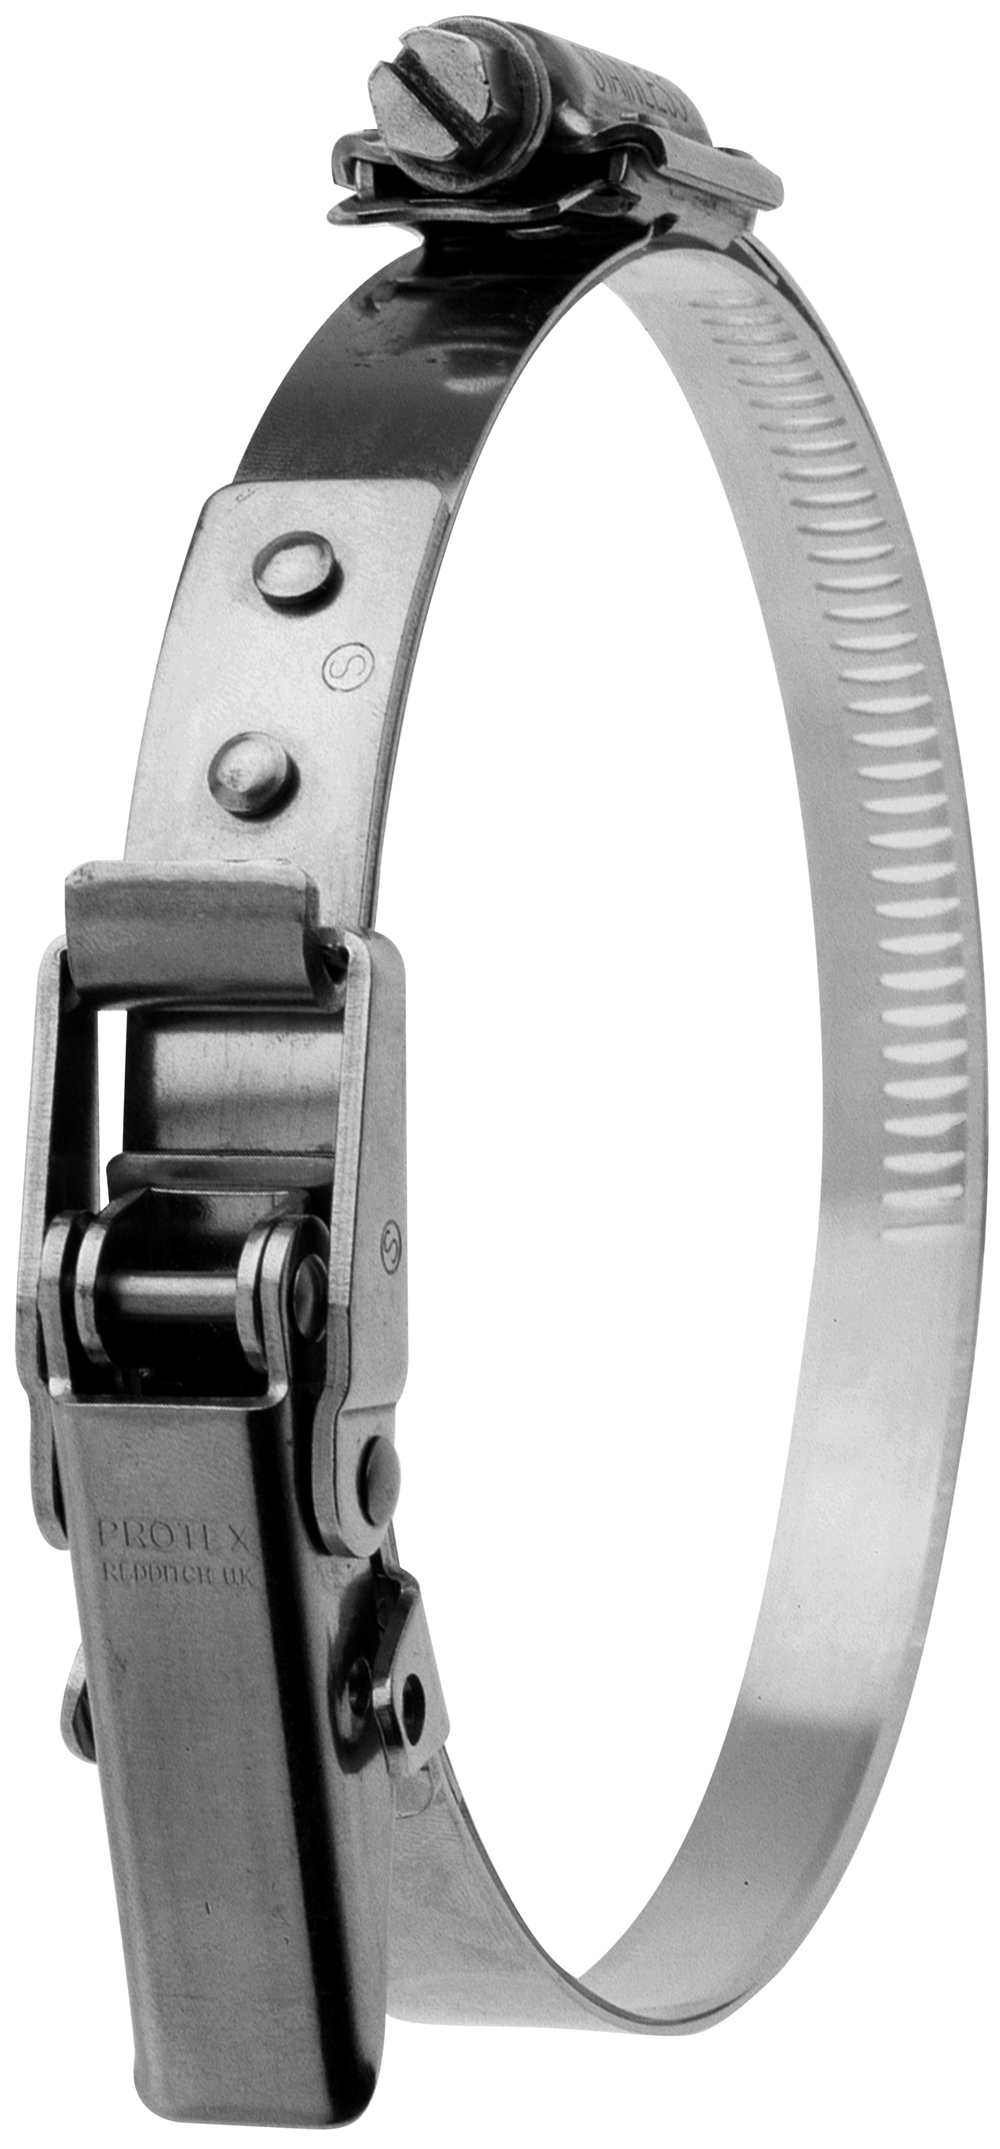 Packs of 2 JCS Hi-Grip worm drive hose clips sizes 90mm to 280mm available zinc plated 210-240mm